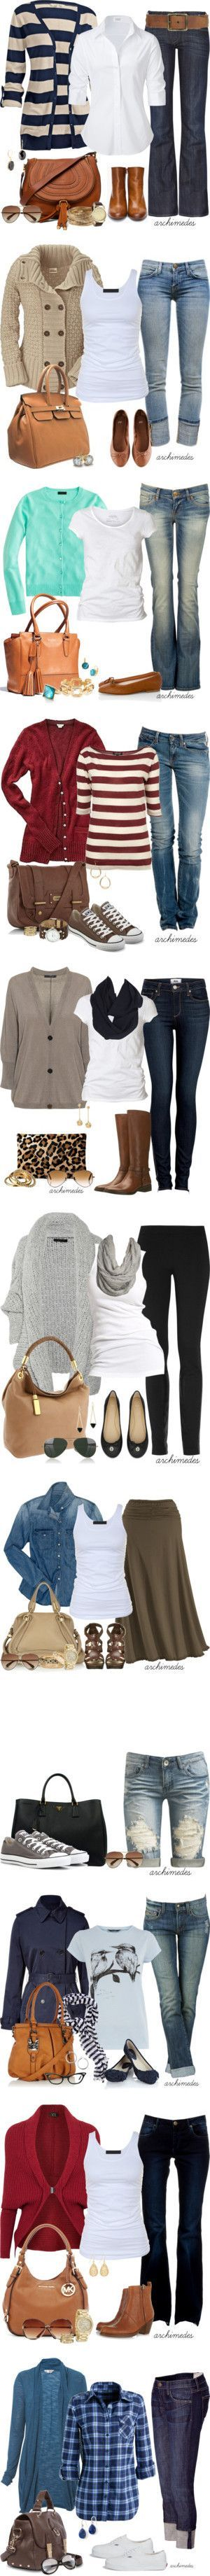 Lots of ideas - Comfy, Casual and Cute